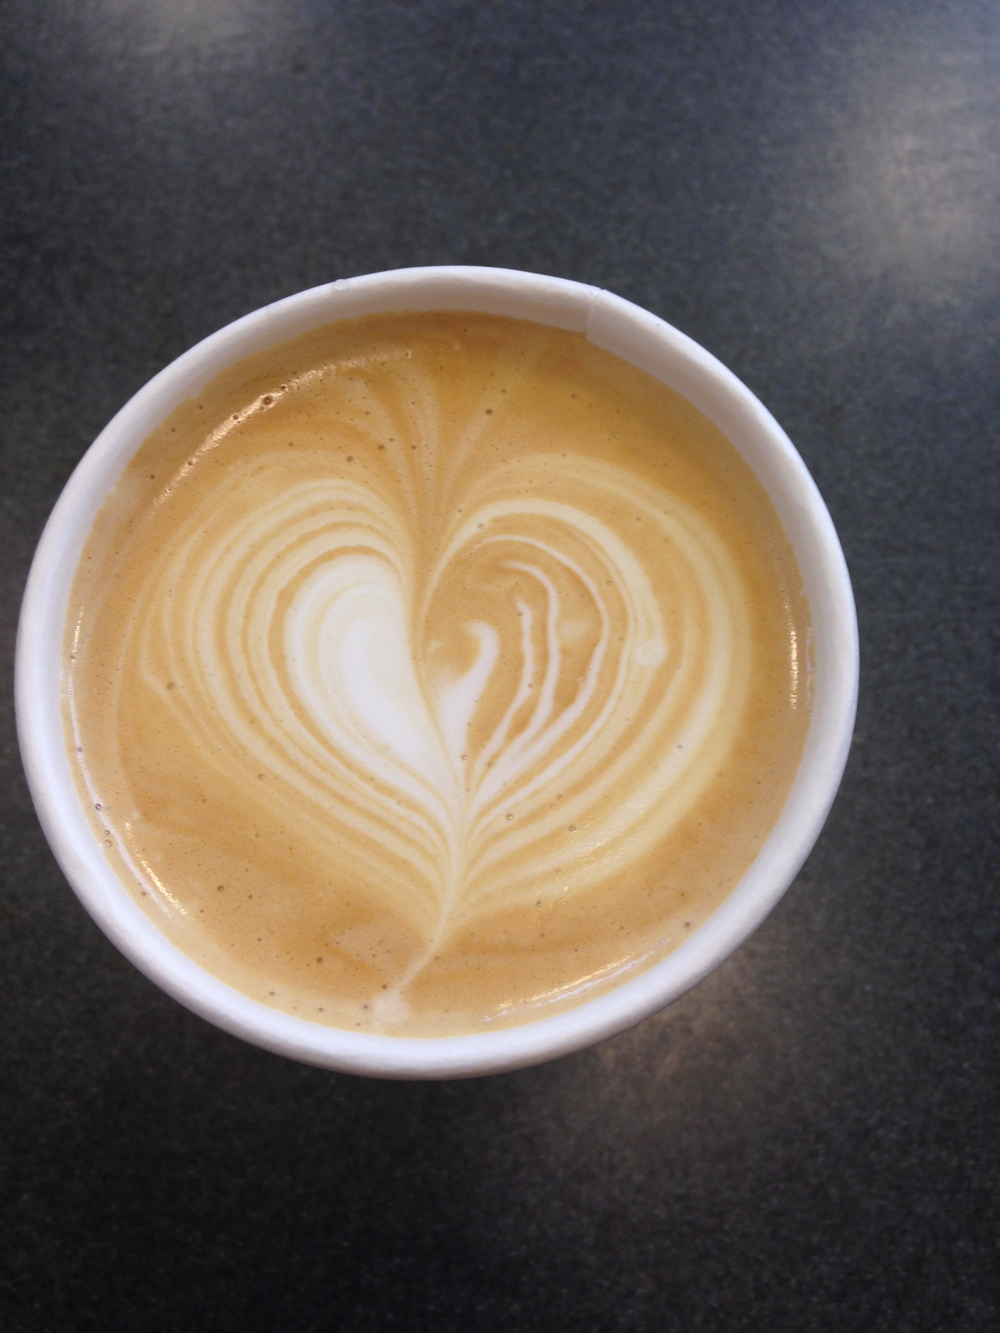 My latte, clearly made with love